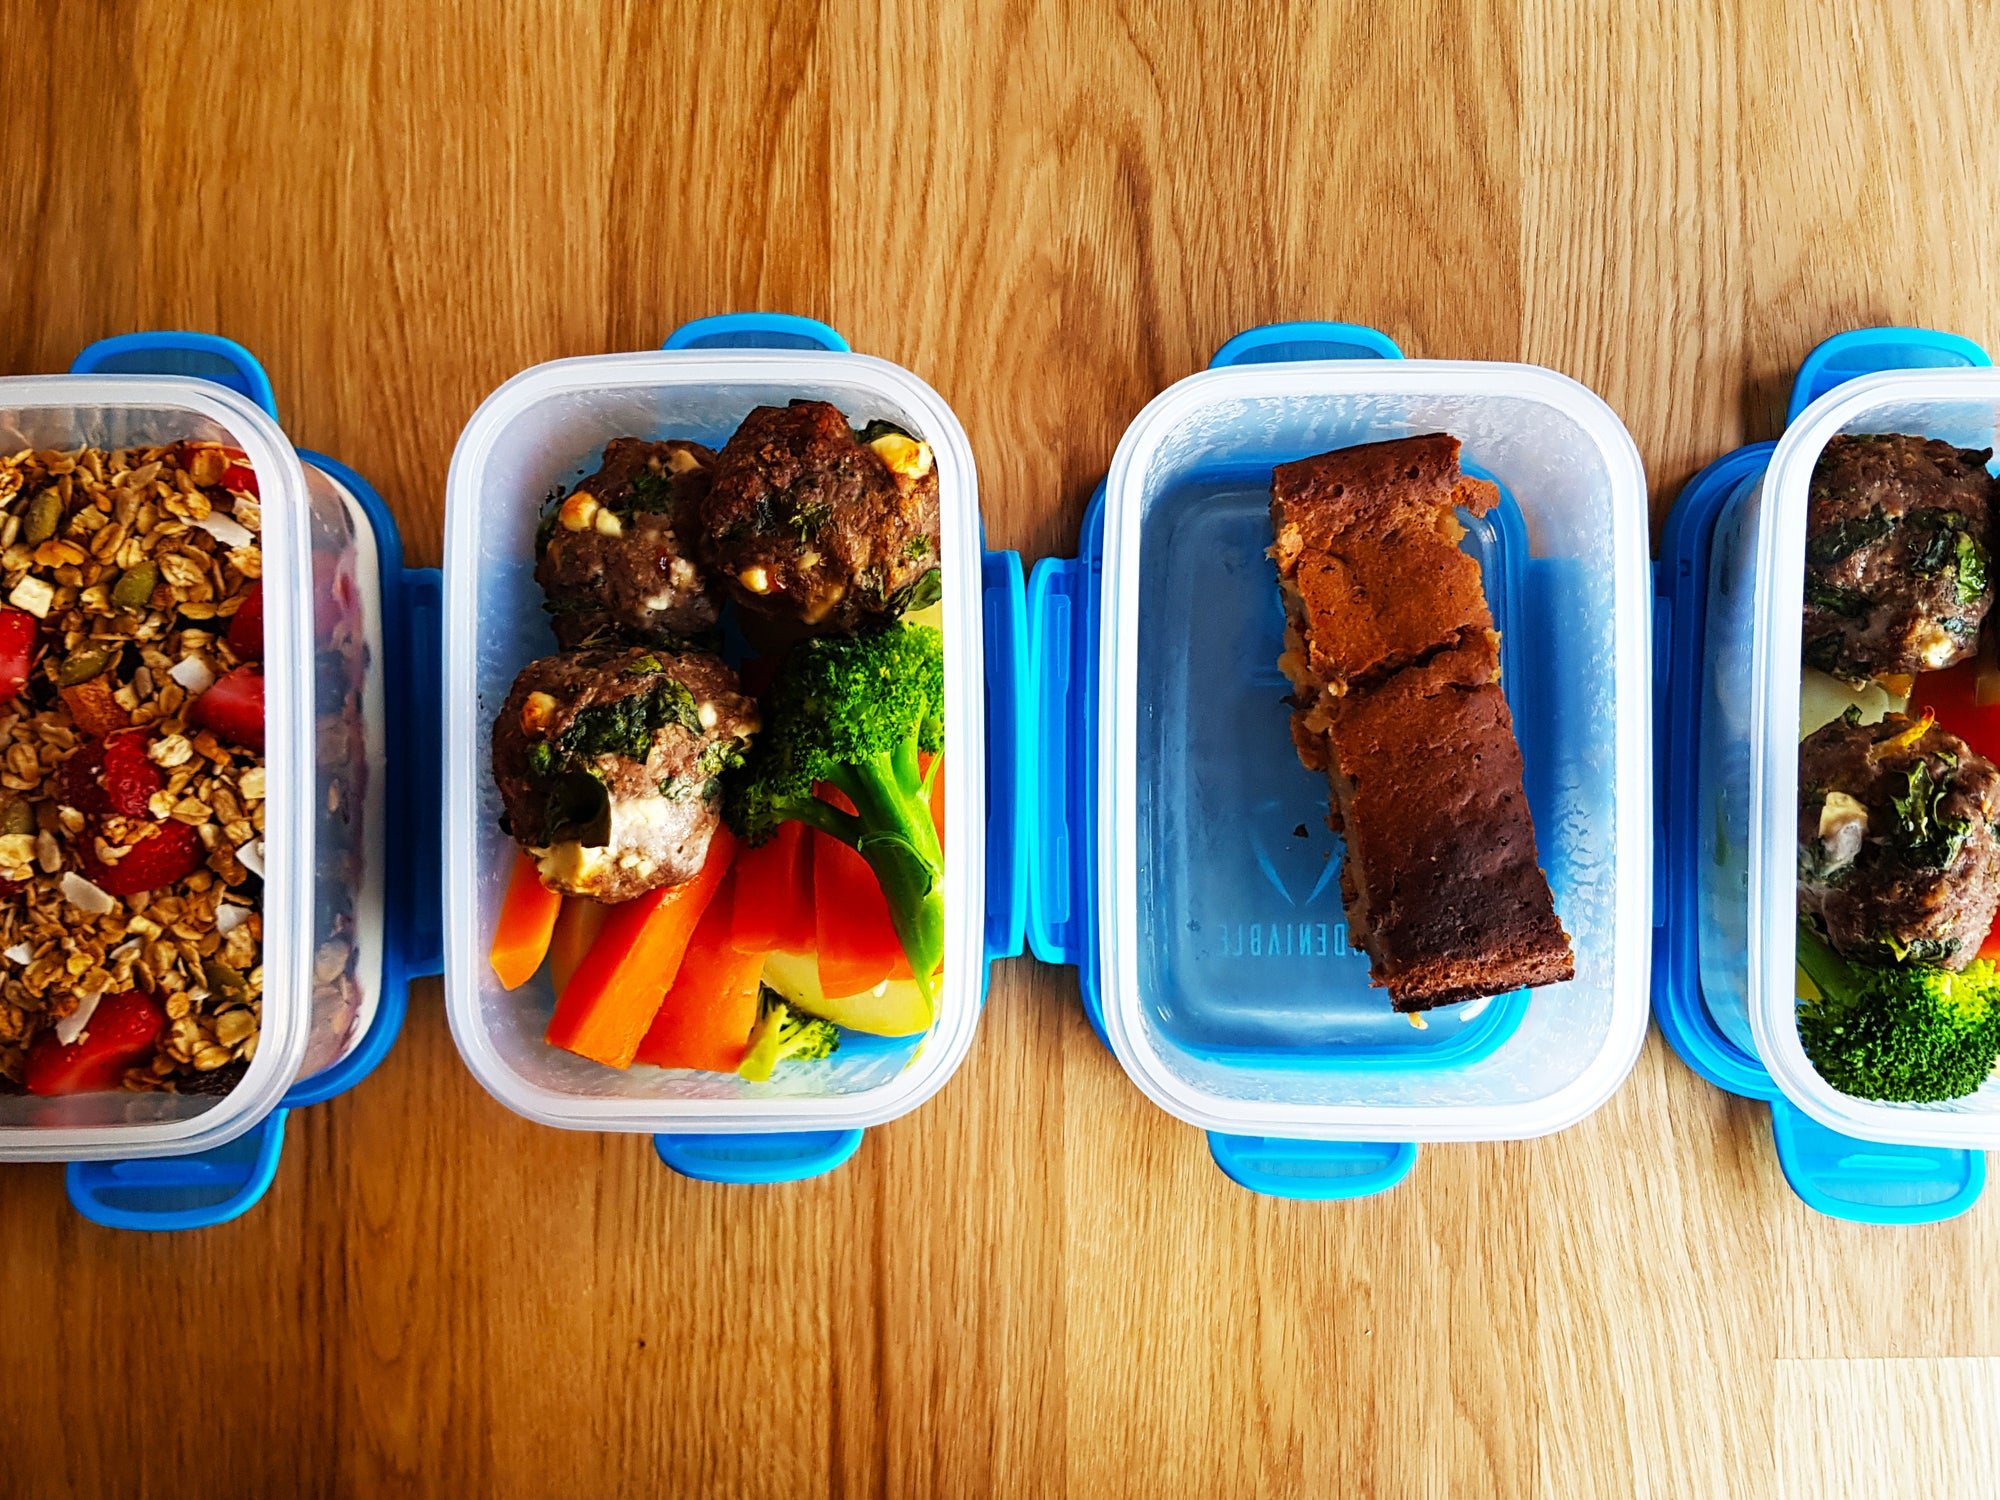 Meal Prep Sunday - 29th July 2018 - 2000 Calories & 6 Meals Per Day